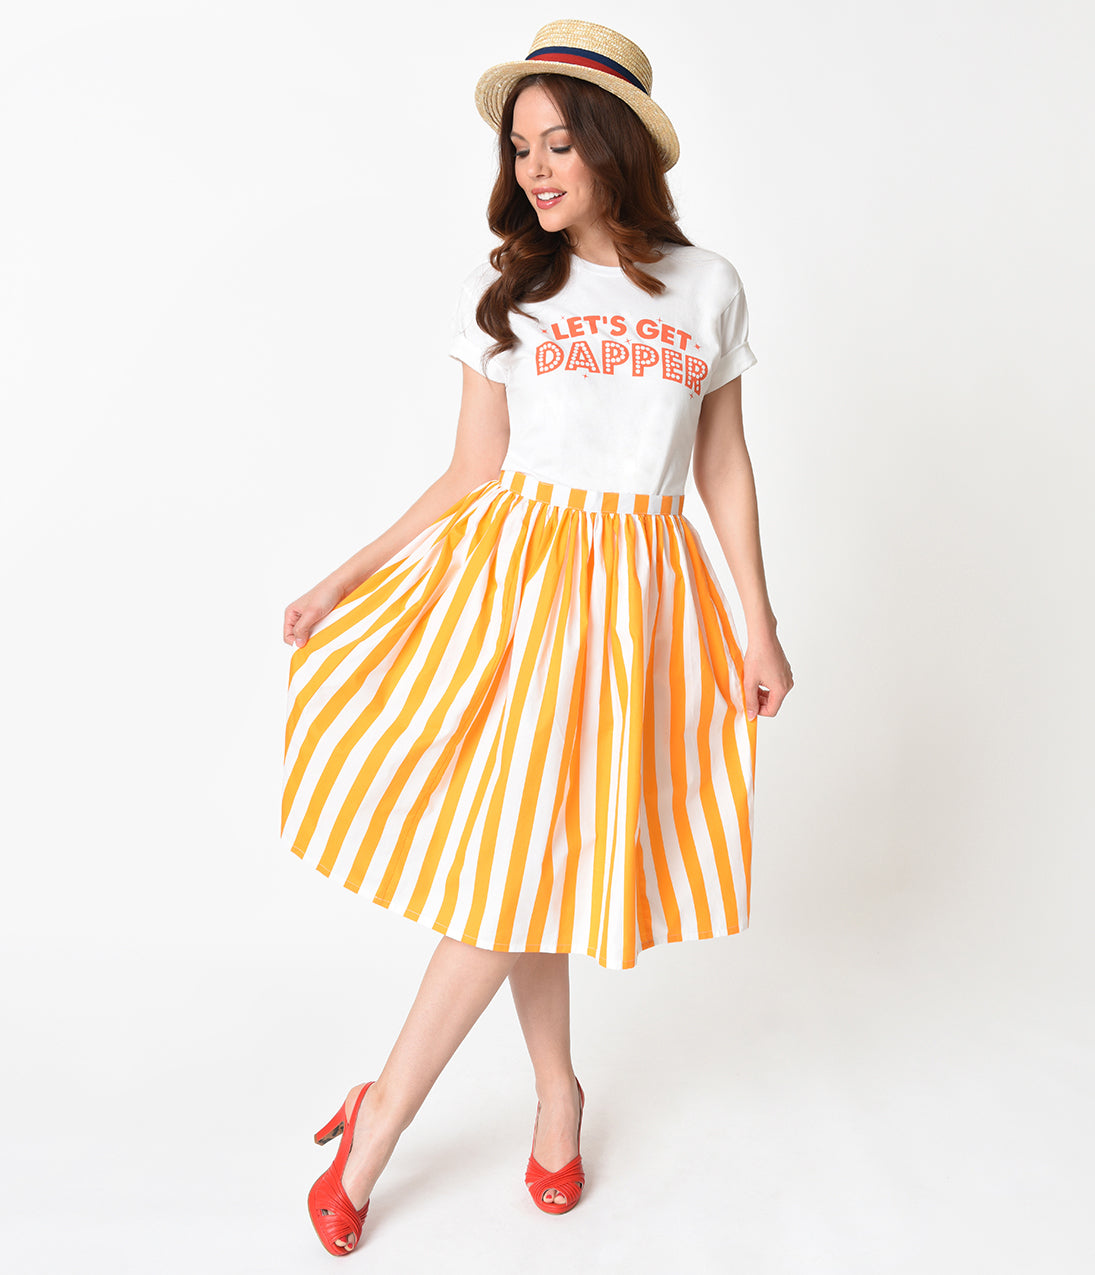 Sailor Dresses, Nautical Dress, Pin Up & WW2 Dresses Marigold Yellow  White Striped Gathered Cotton Swing Skirt $42.00 AT vintagedancer.com